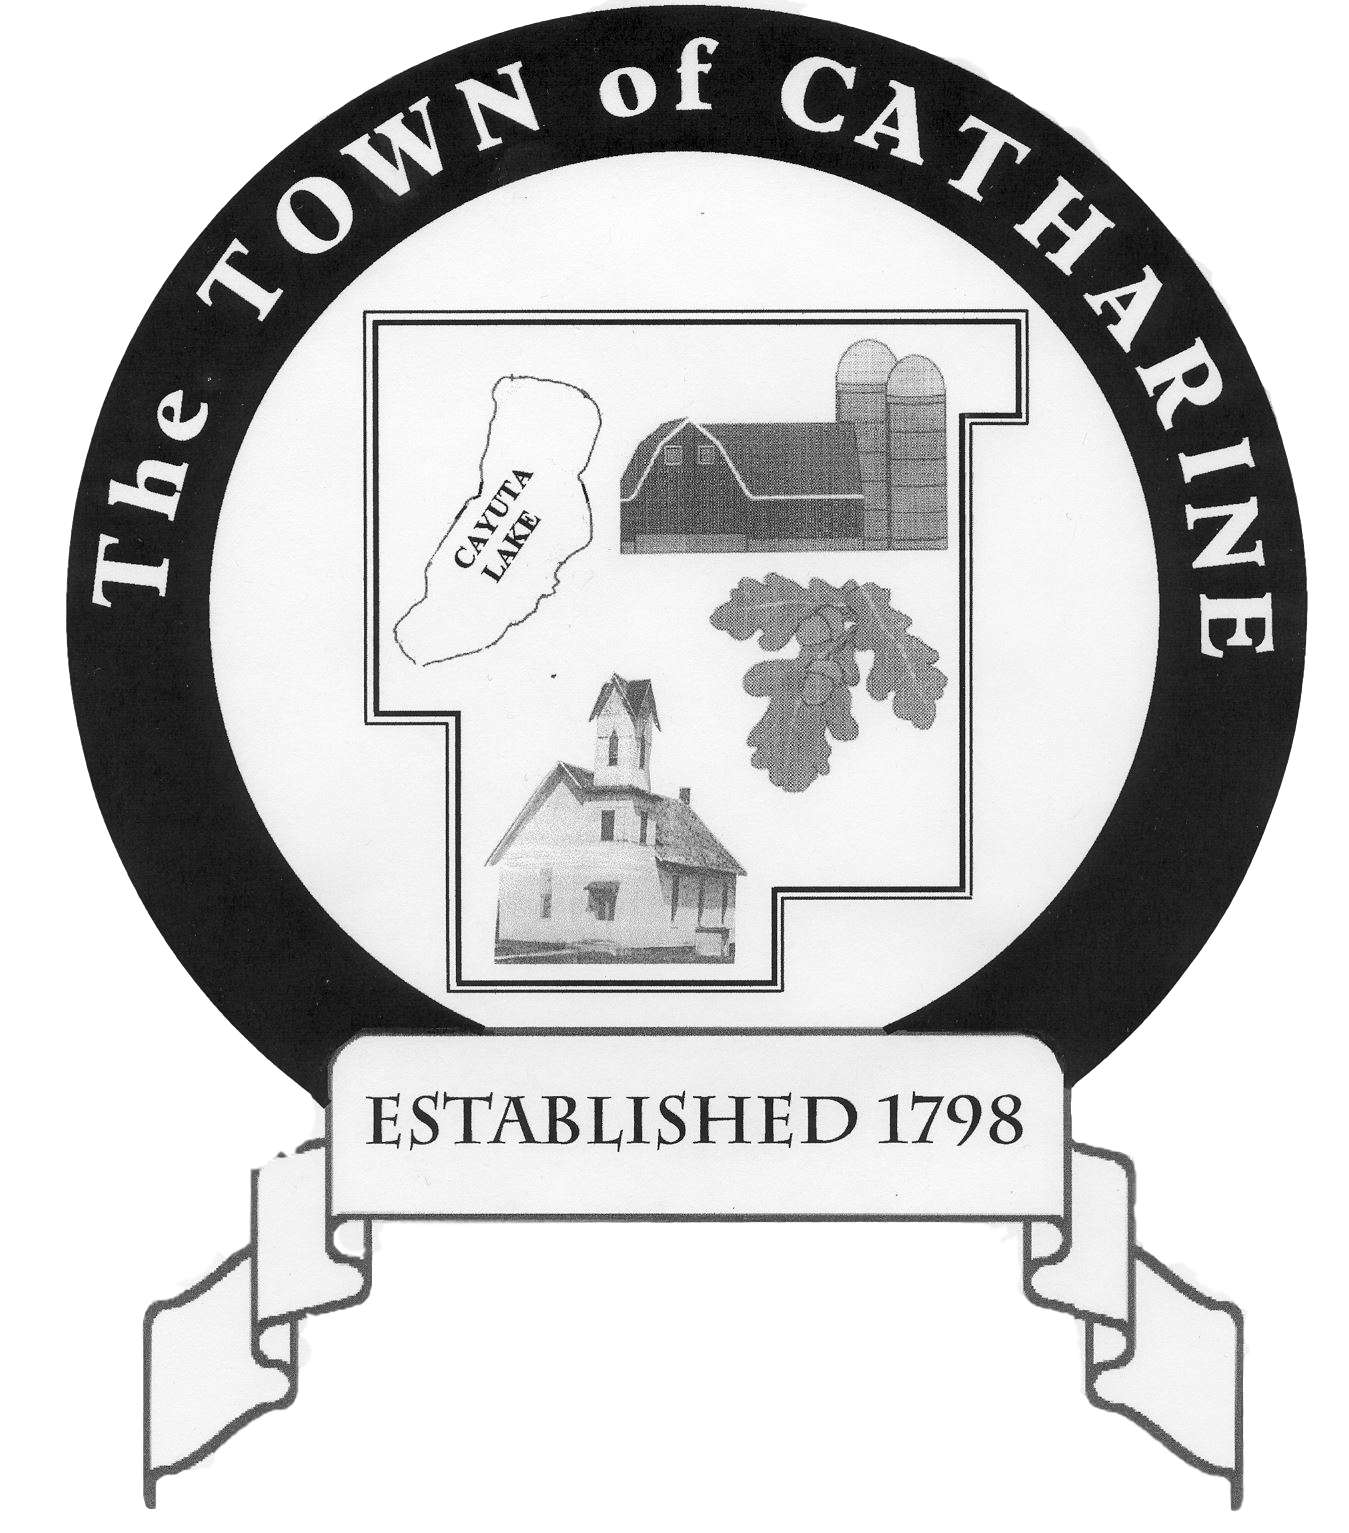 Home - Town of Catharine